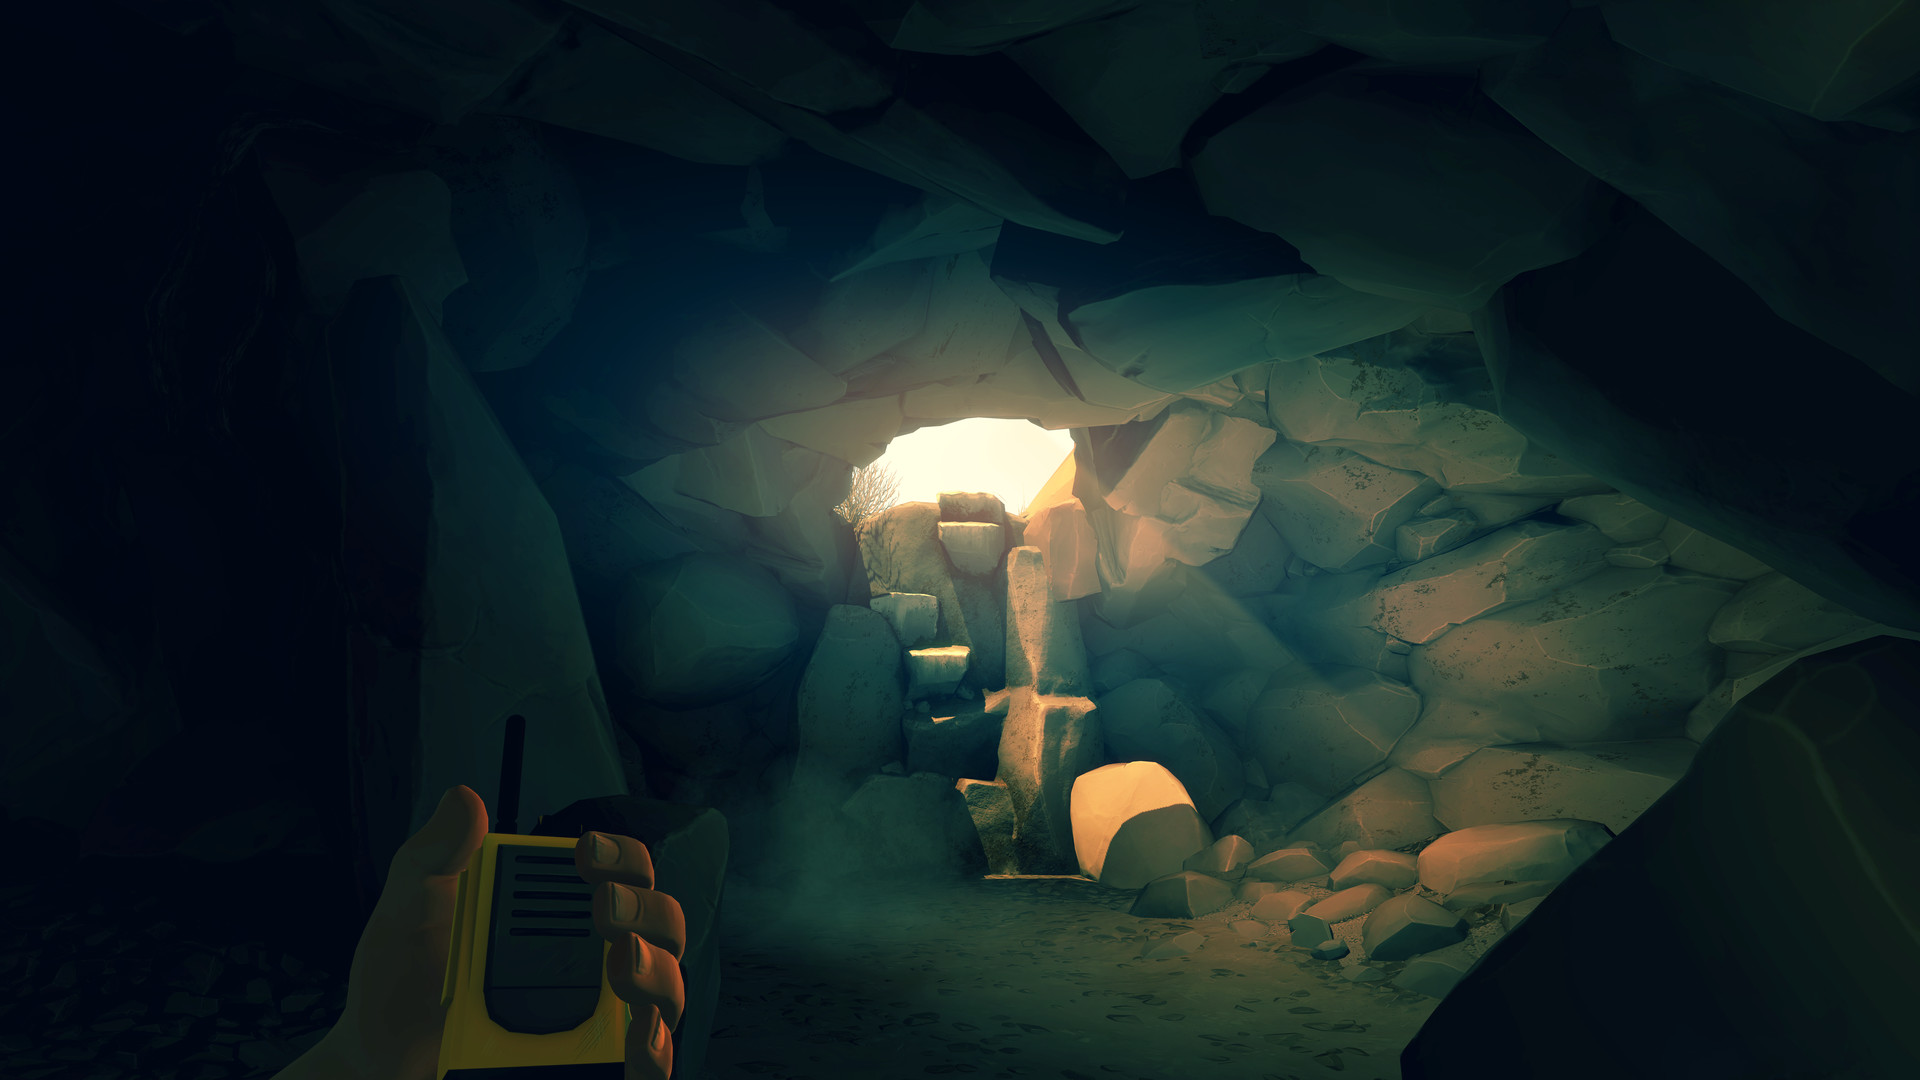 Nearly three years after launch, Firewatch is hitting Switch soon screenshot